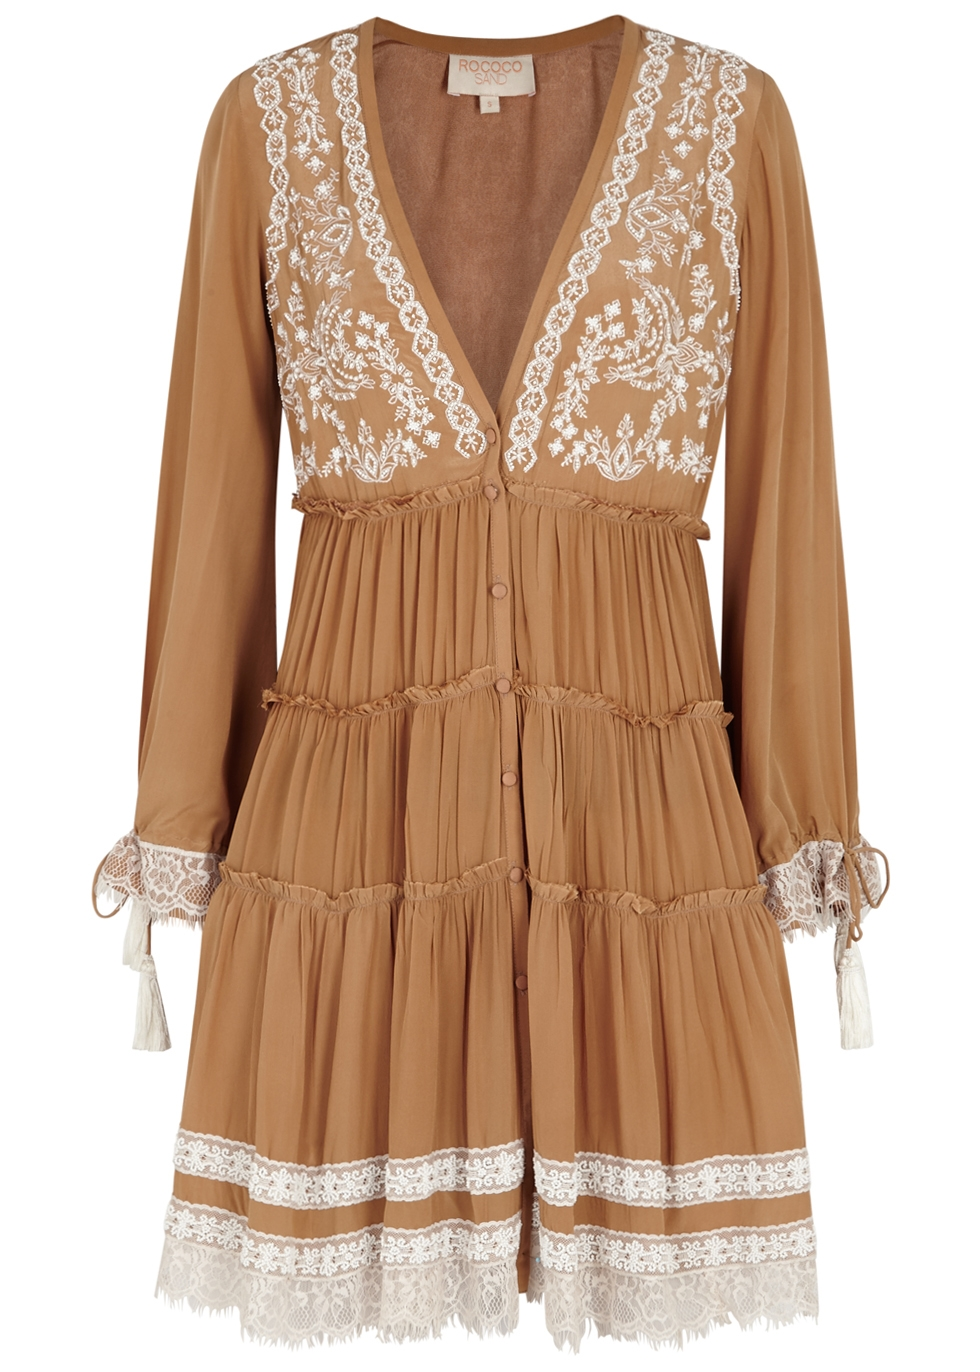 ROCOCO SAND BISQUE MOCHA BEAD-EMBELLISHED DRESS